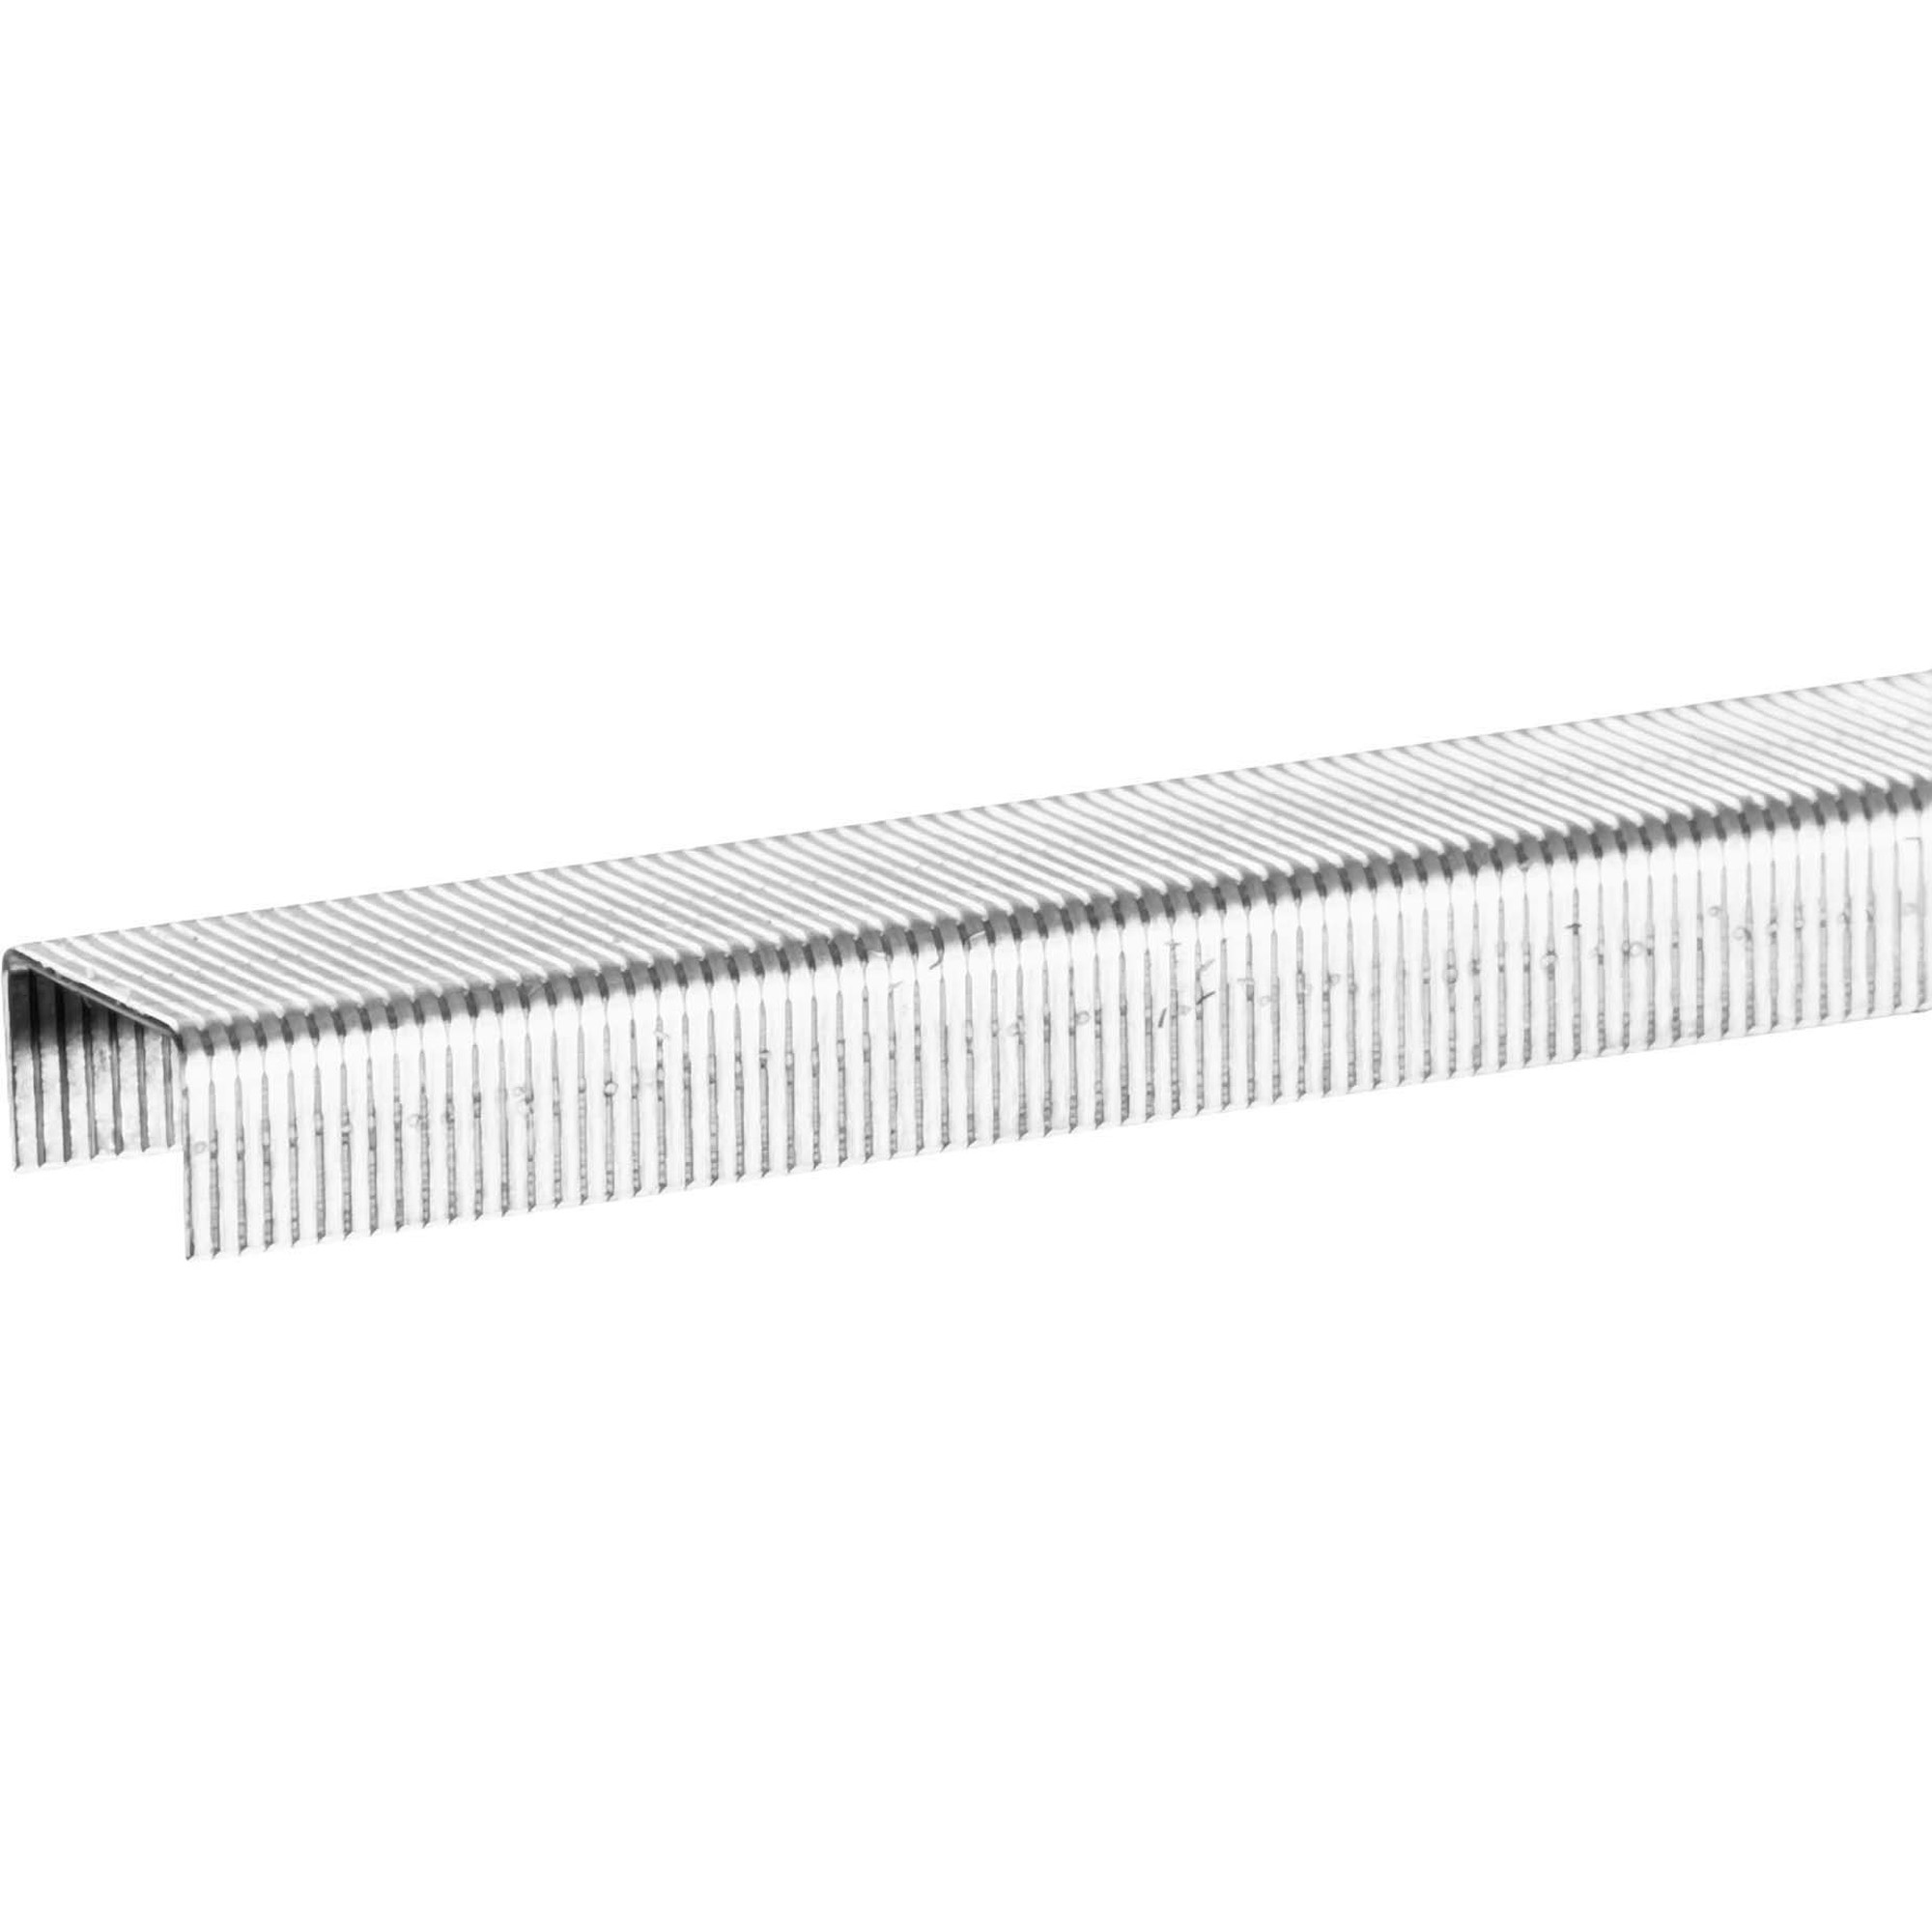 Swingline, SWI35314, SF13 Heavy-duty Chisel Point Staples, 1000 / Box, Silver